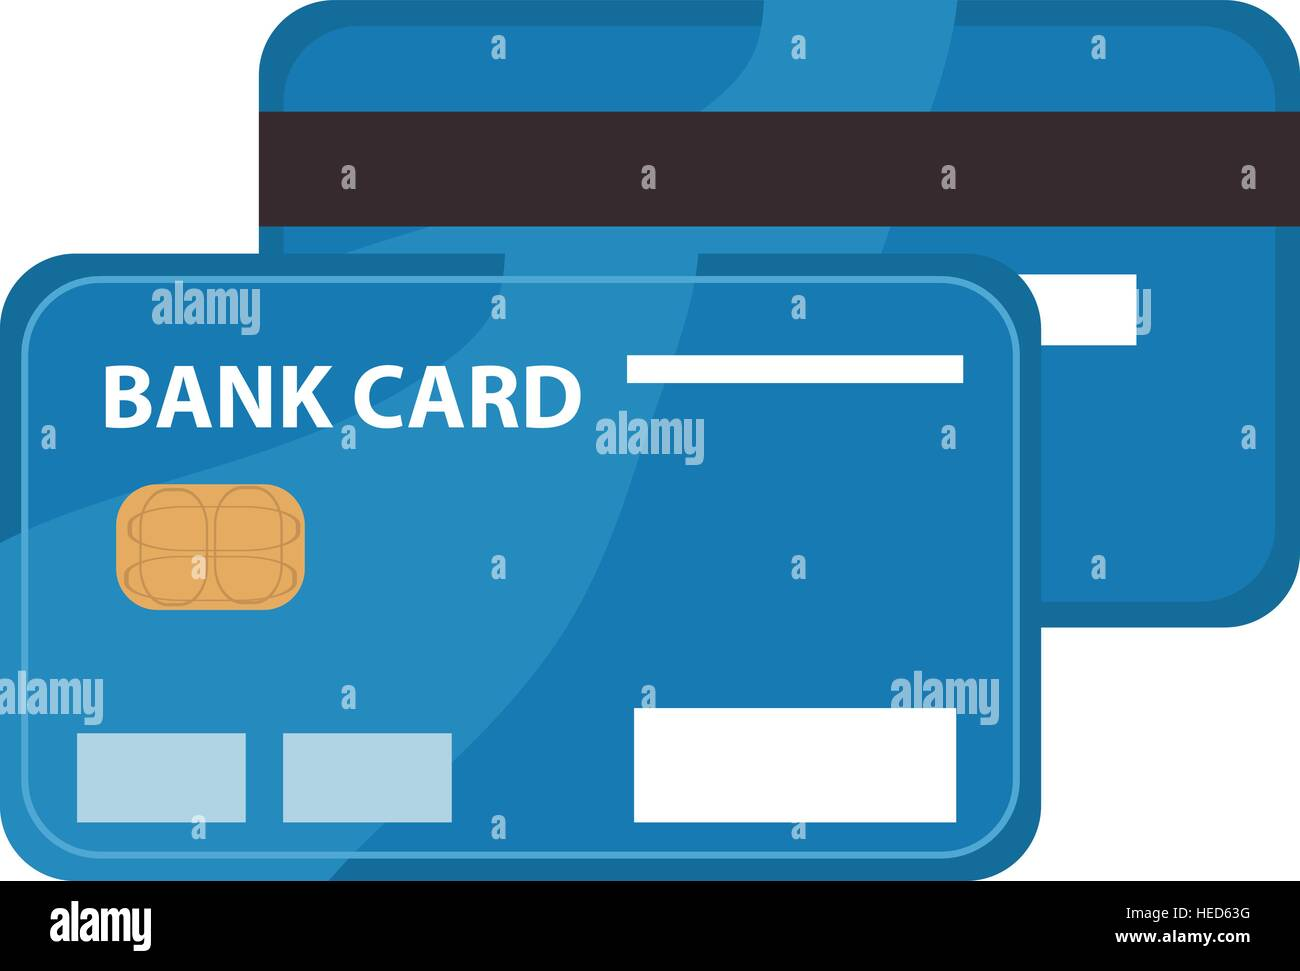 Credit card icon, flat design. Bank card isolated on white background. Vector illustration, clip art - Stock Image